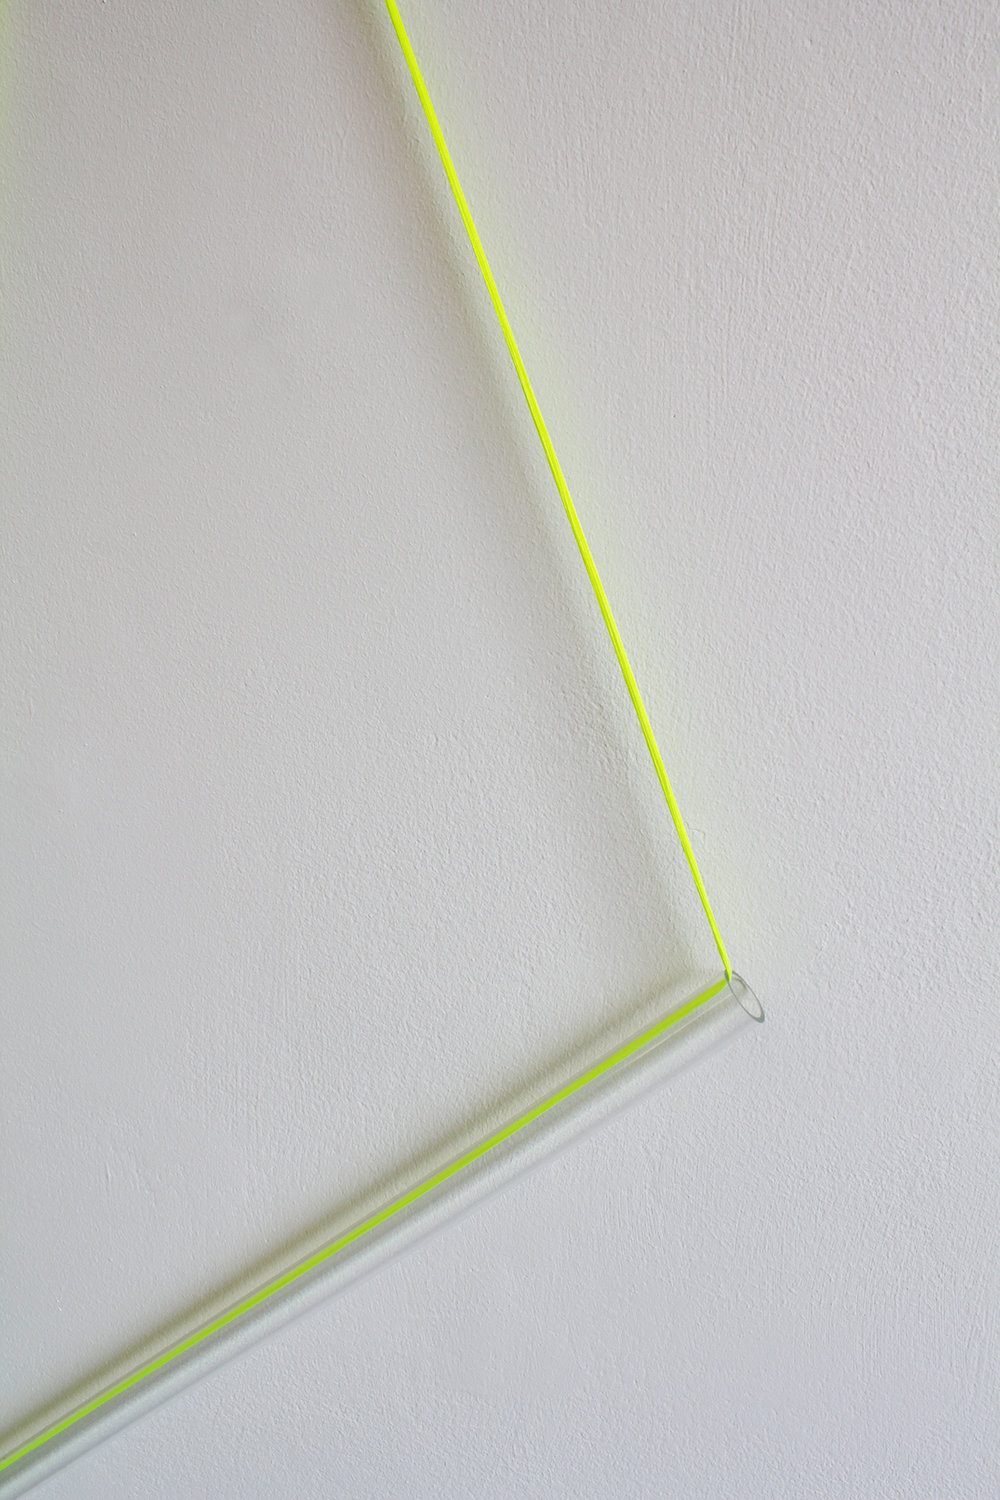 Kate_Terry_Fluorescent-Tube-Yellow_b.jpg